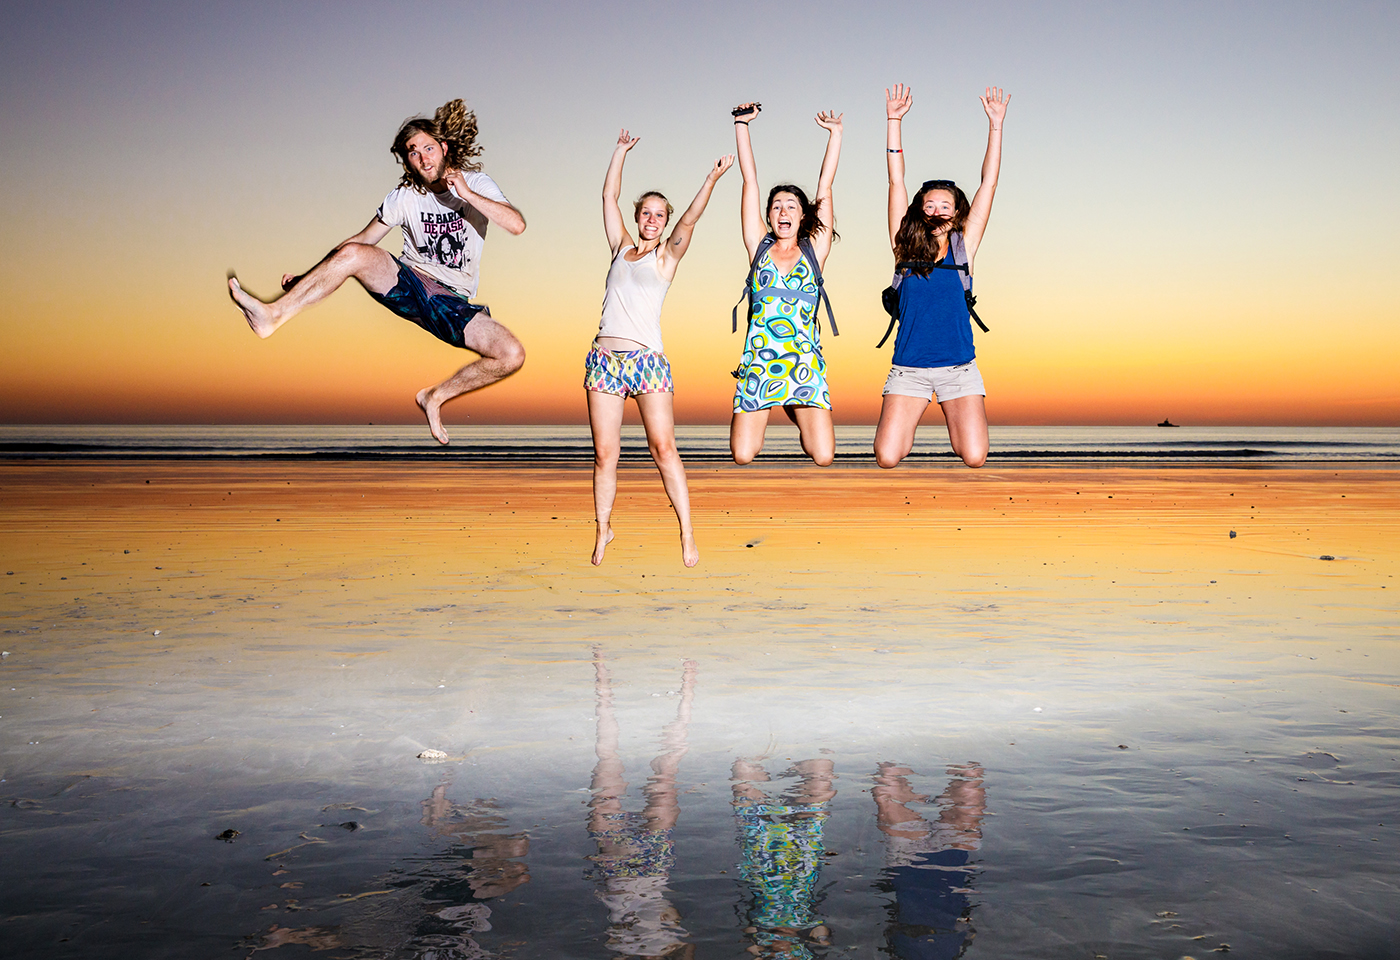 Image of four people jumping on a beach at sunset